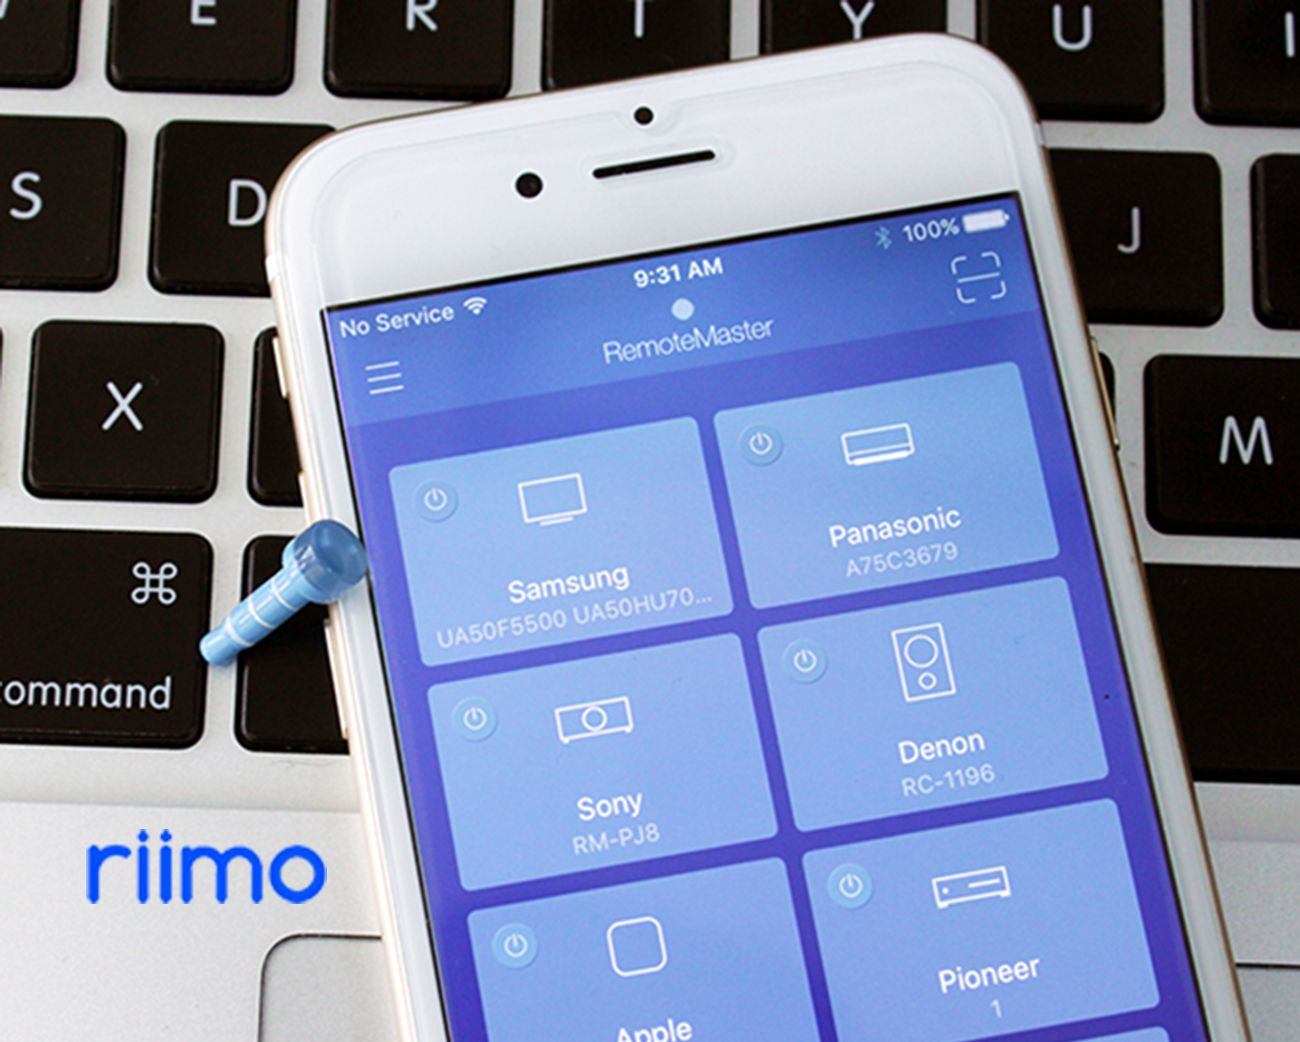 riimo – Ultrasmall IR Smart Remote for any devices